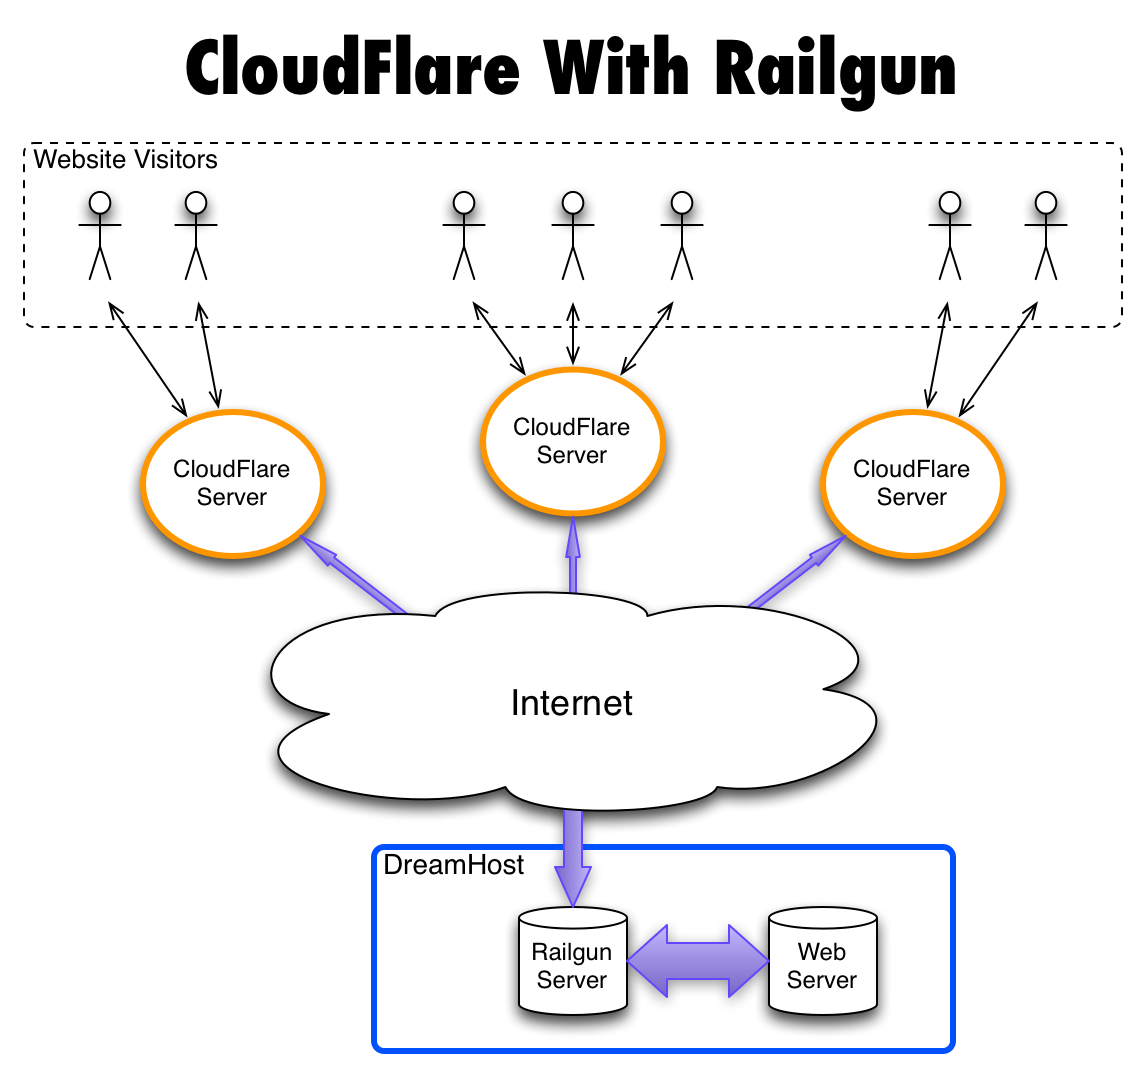 CloudFlare With Railgun